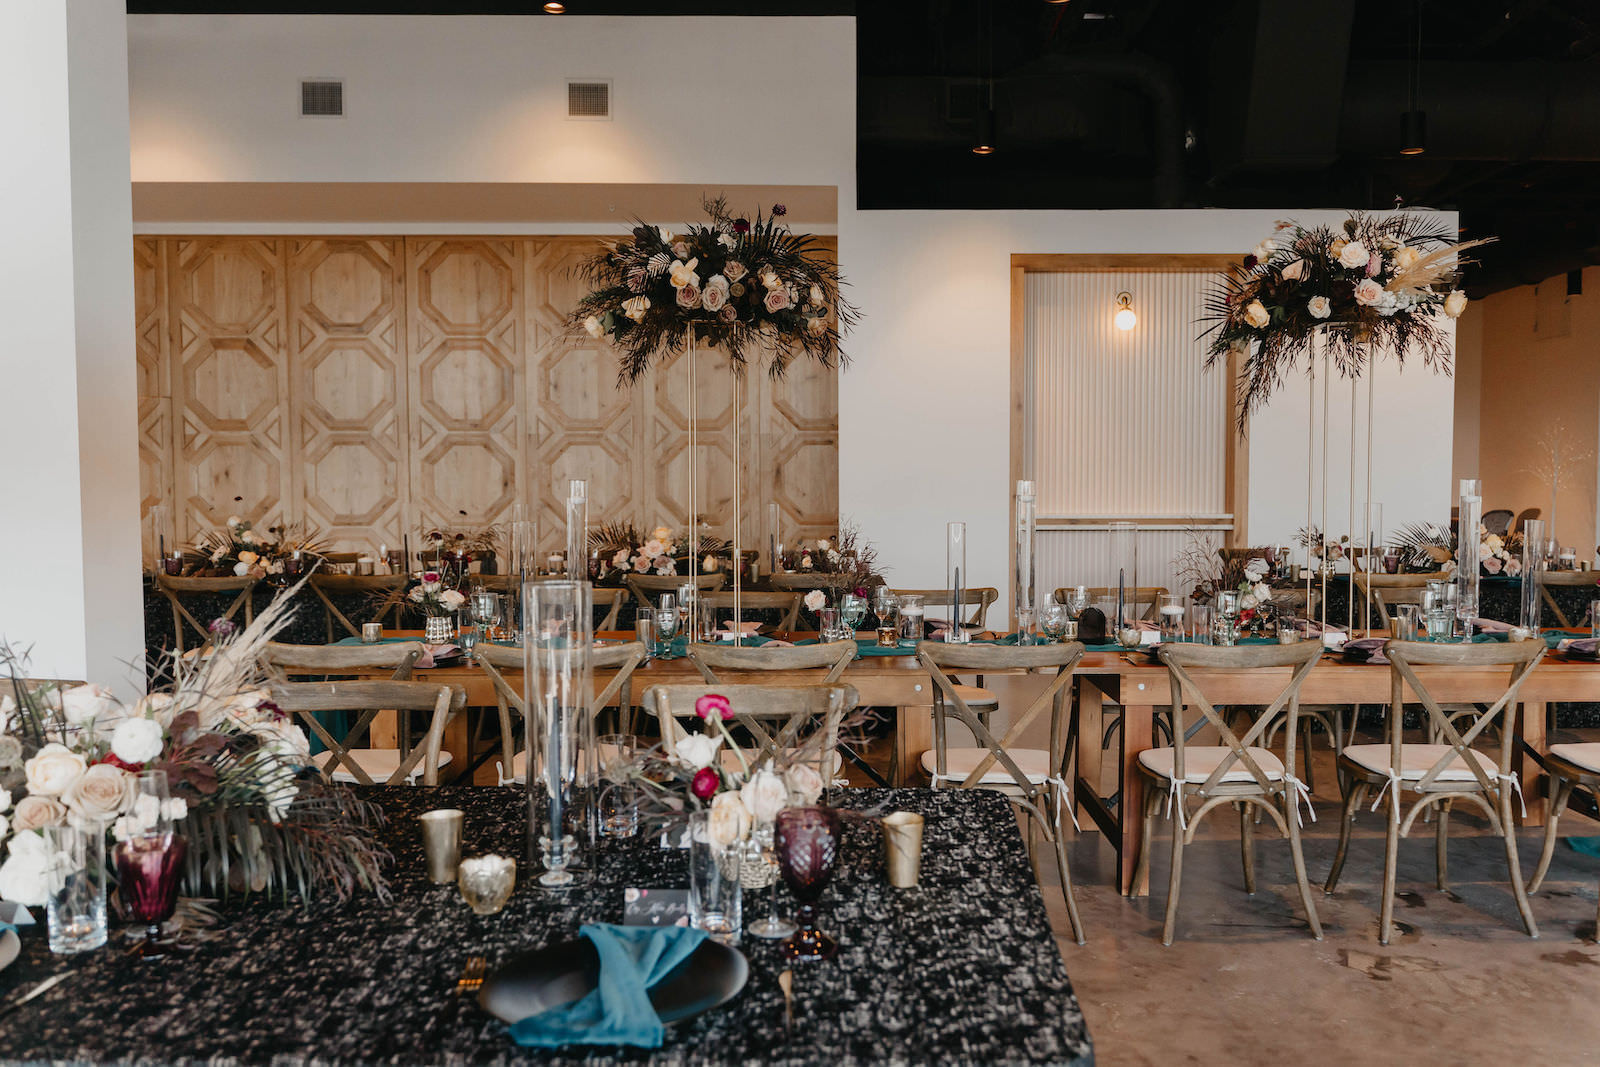 Indoor Wedding Reception at Tampa Wedding Venue Hyde House   Long Wood Feasting Communal Tables with Cross Back Chairs and Dark Emerald Green Cheesecloth Gossamer Runners and Black Sequin Tablecloth Linens   Tall Geometric Vase Centerpieces with Dark Green and Black Leaves, Pampas Grass, and Blush Cafe au Lait Roses with Candlesticks